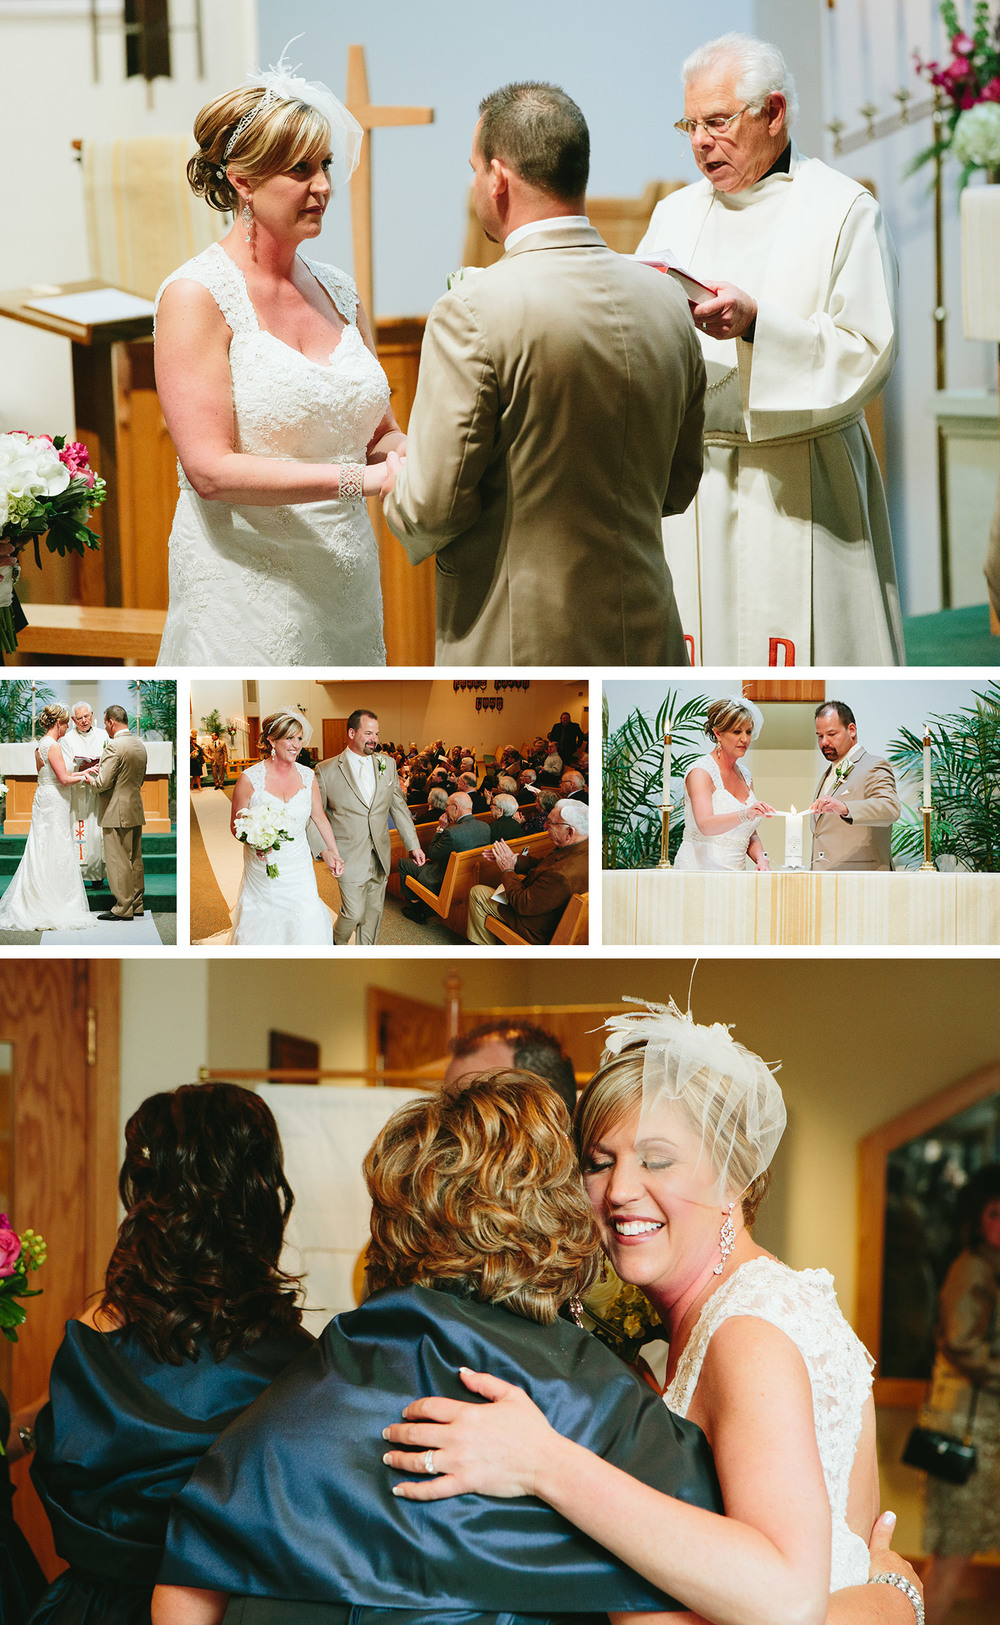 Crosslake Lutheran Church wedding